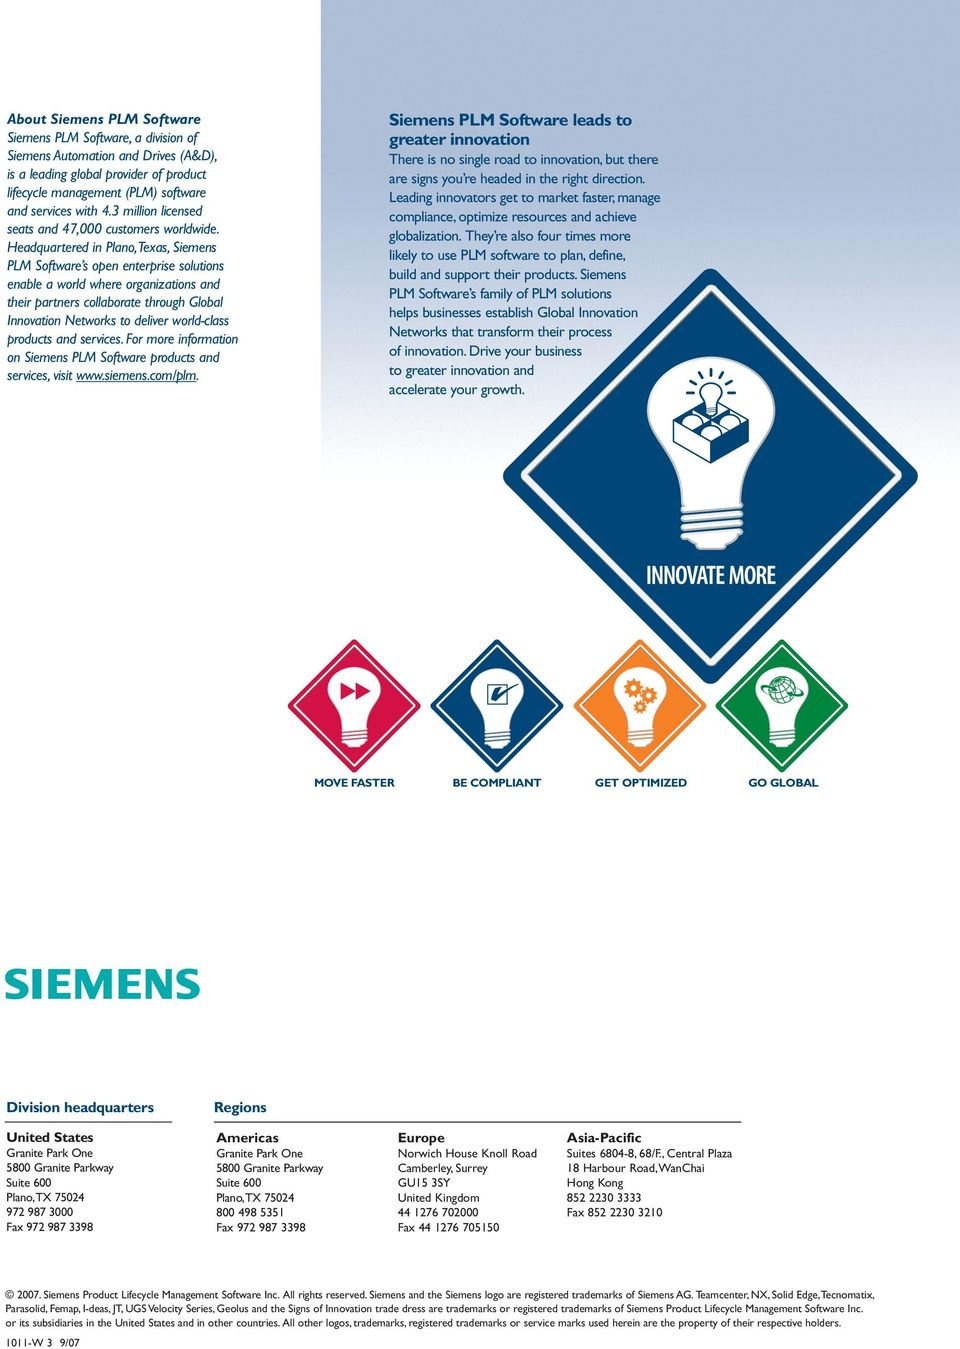 Headquartered in Plano,Texas, Siemens PLM Software s open enterprise solutions enable a world where organizations and their partners collaborate through Global Innovation Networks to deliver